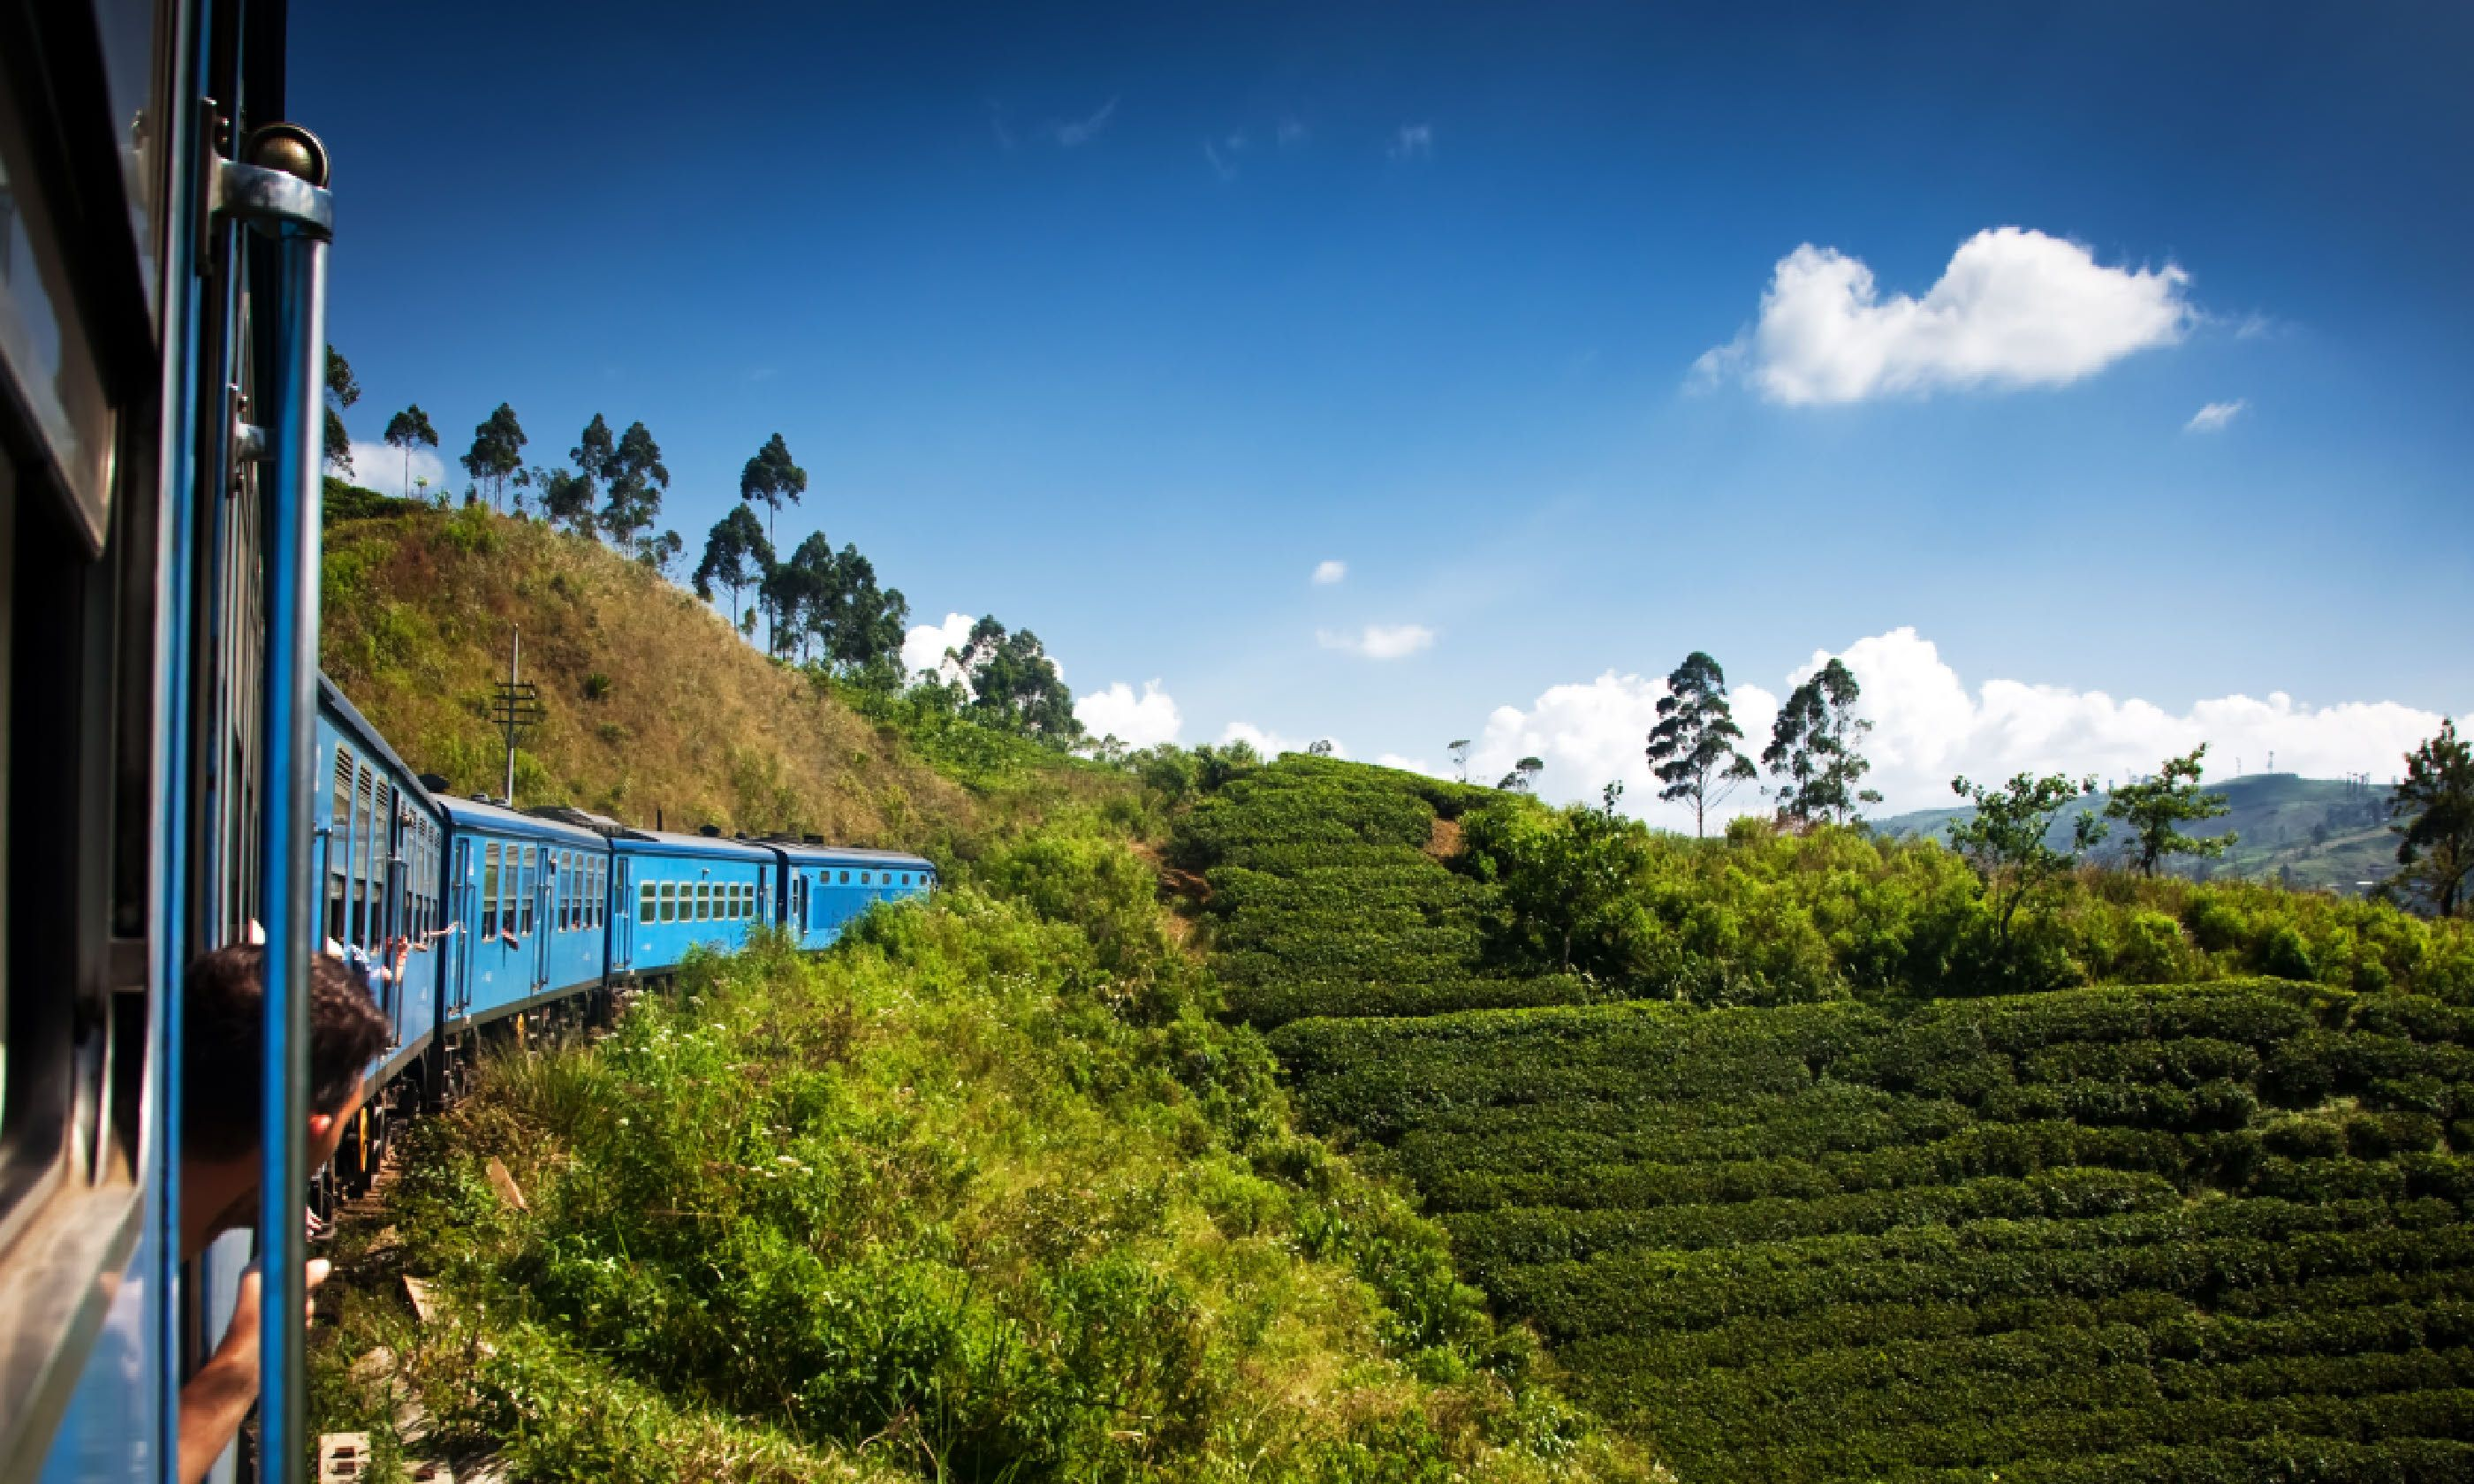 Train from Nuwara Eliya to Kandy (Shutterstock)